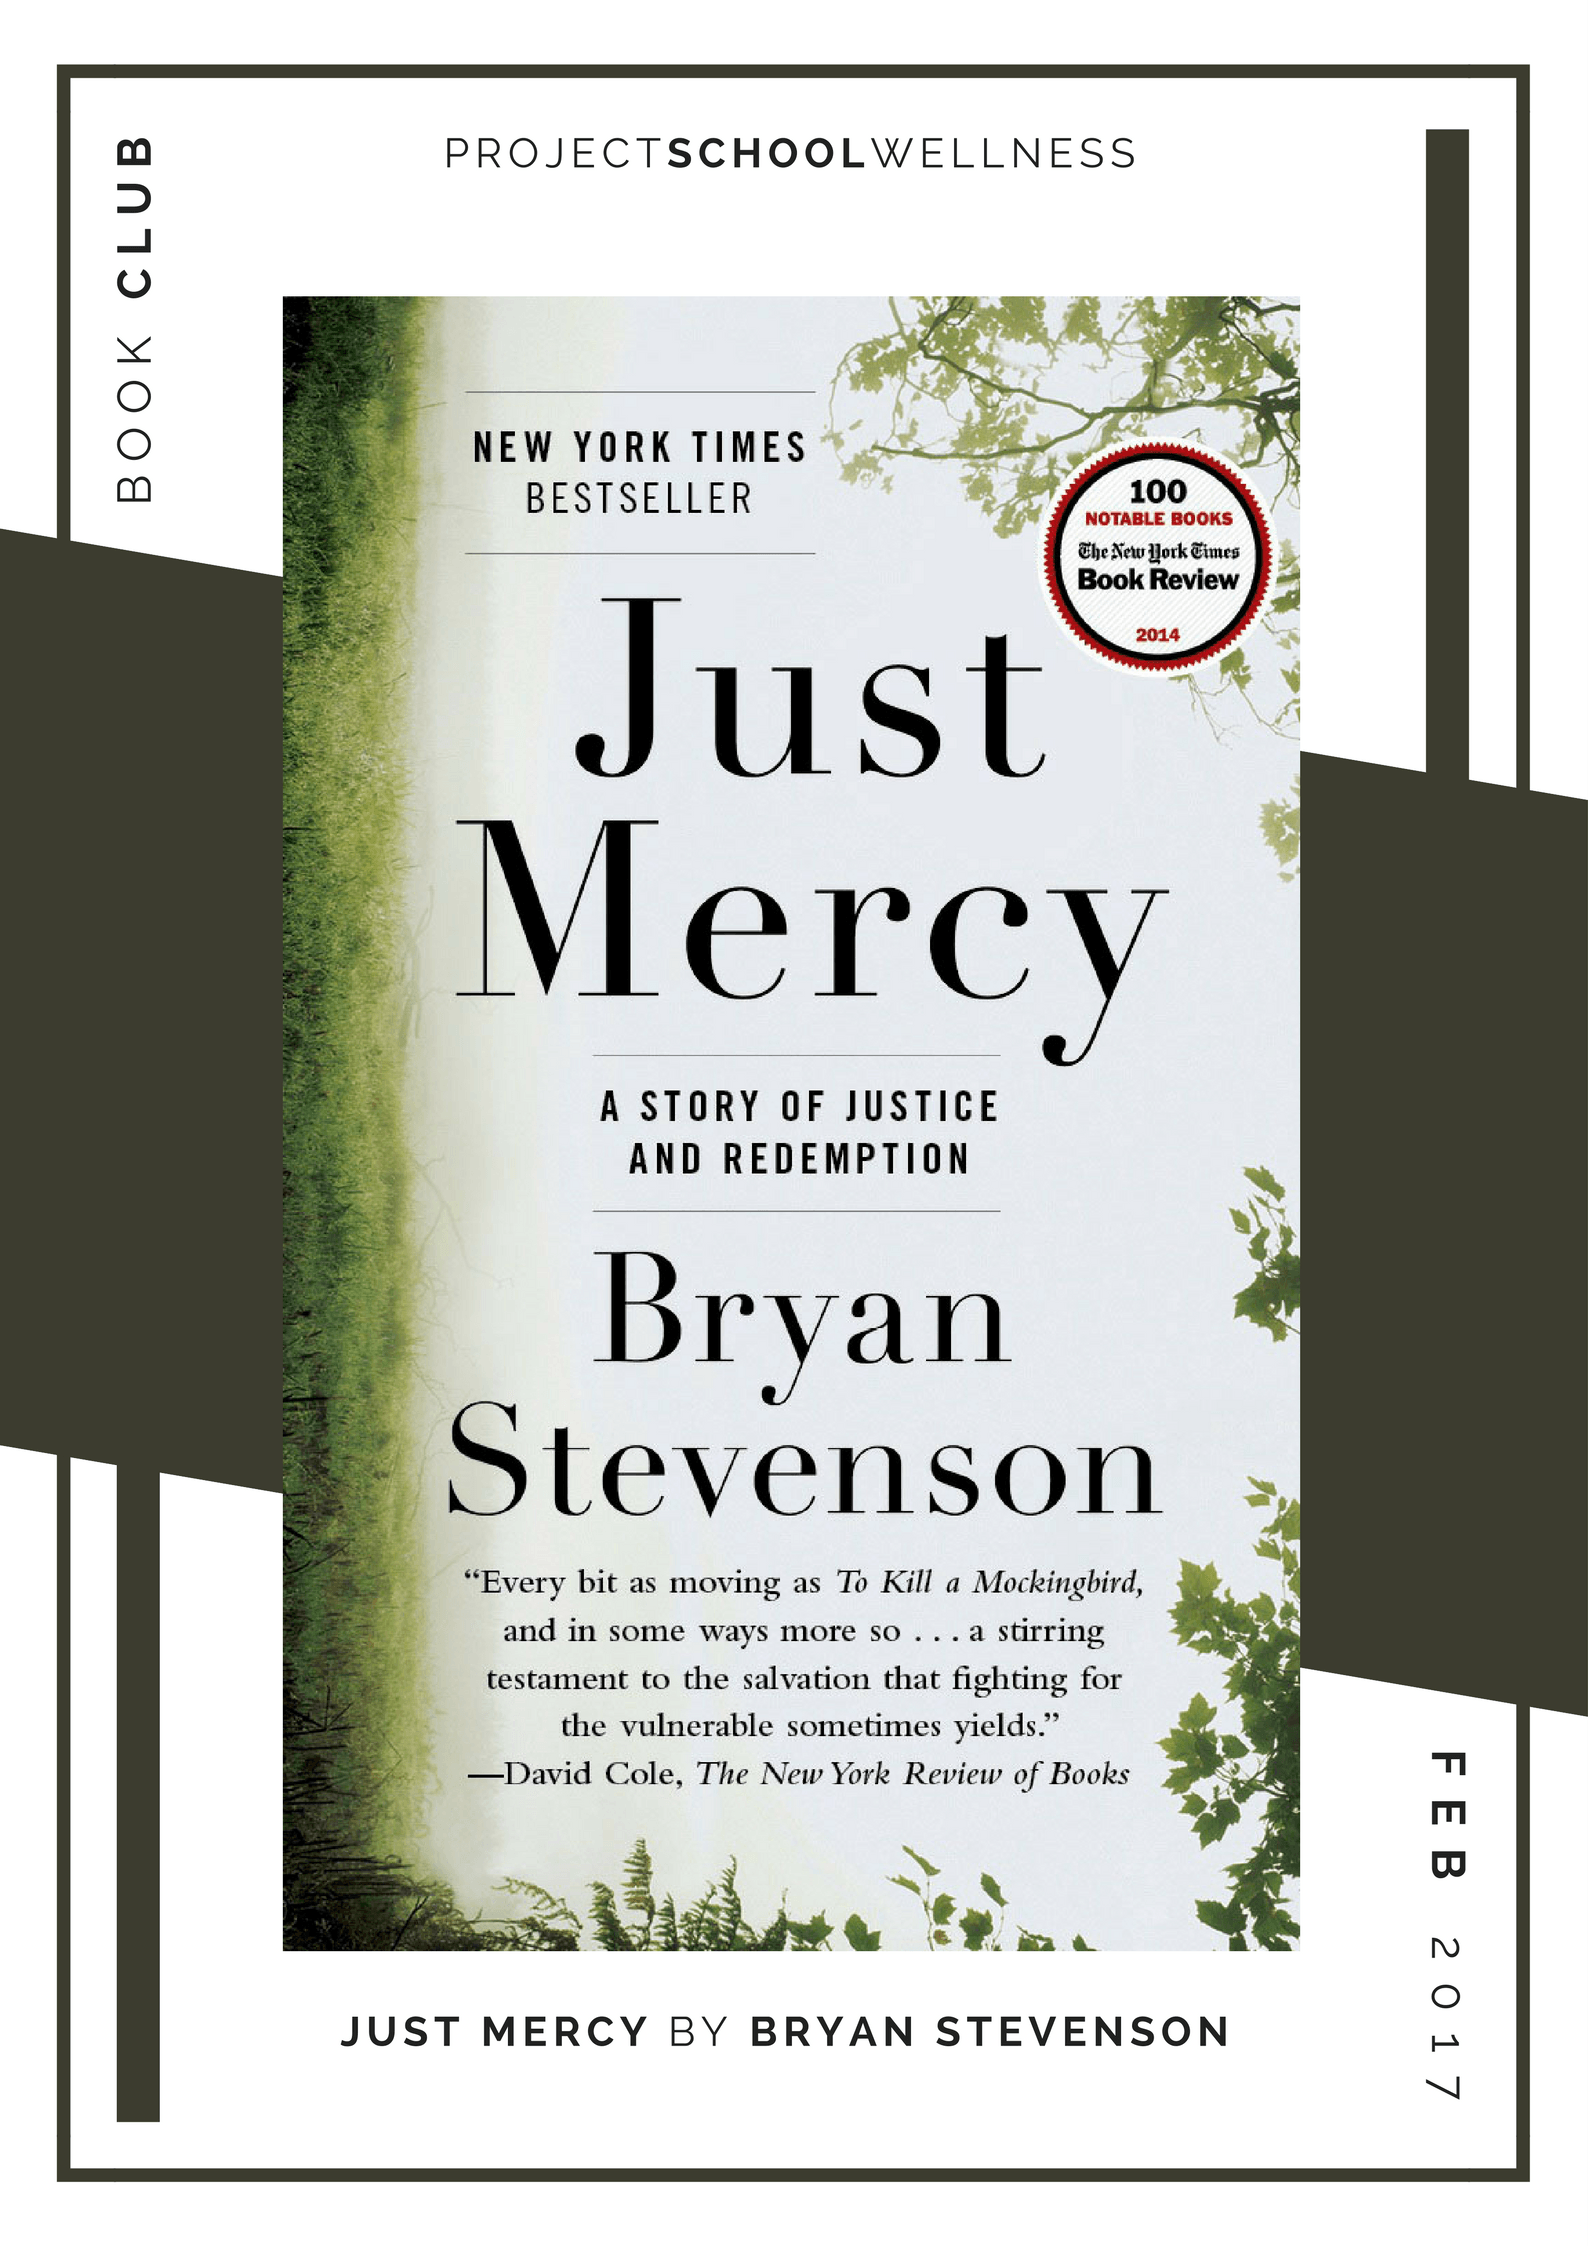 Project School Wellness book club. A list of must read books for teachers and parents! Each month Janelle from Project School Wellness her most current reads. Take a look at the criminal justice system with Bryan Stevenson's book, Just Mercy.